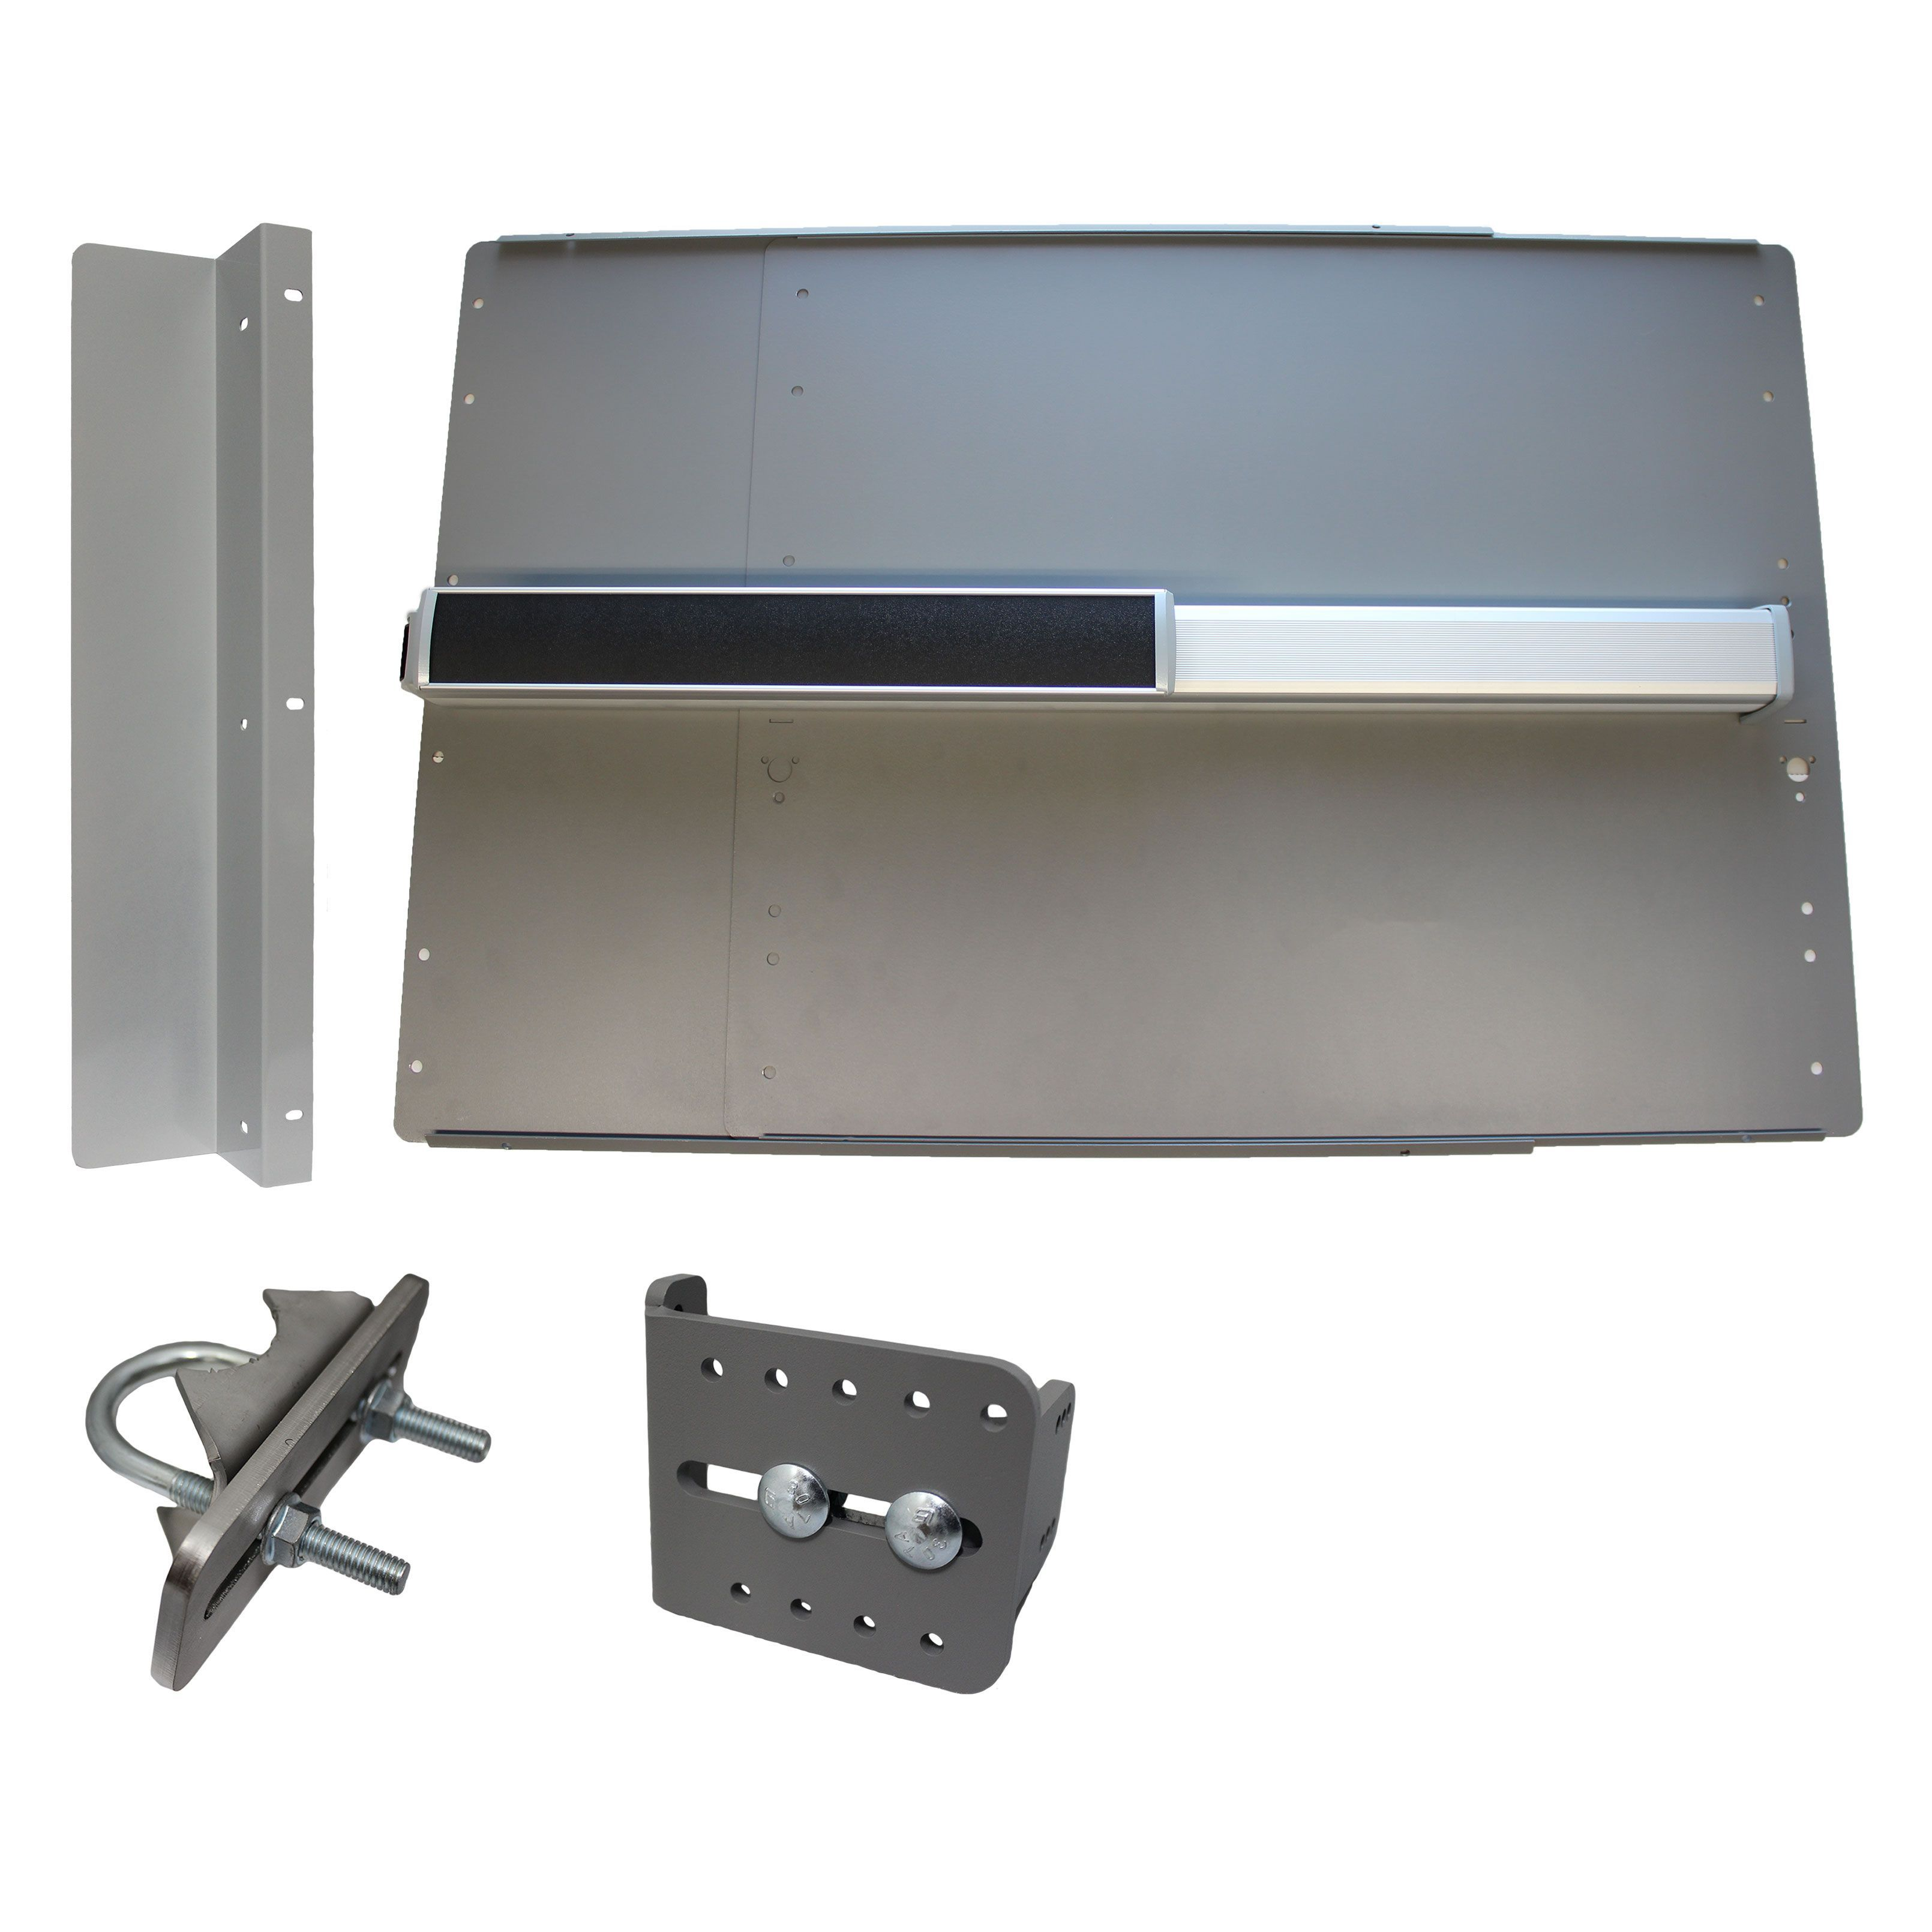 Lockey USA PS-2500 Edge Value Panic Bar Kits for Gates